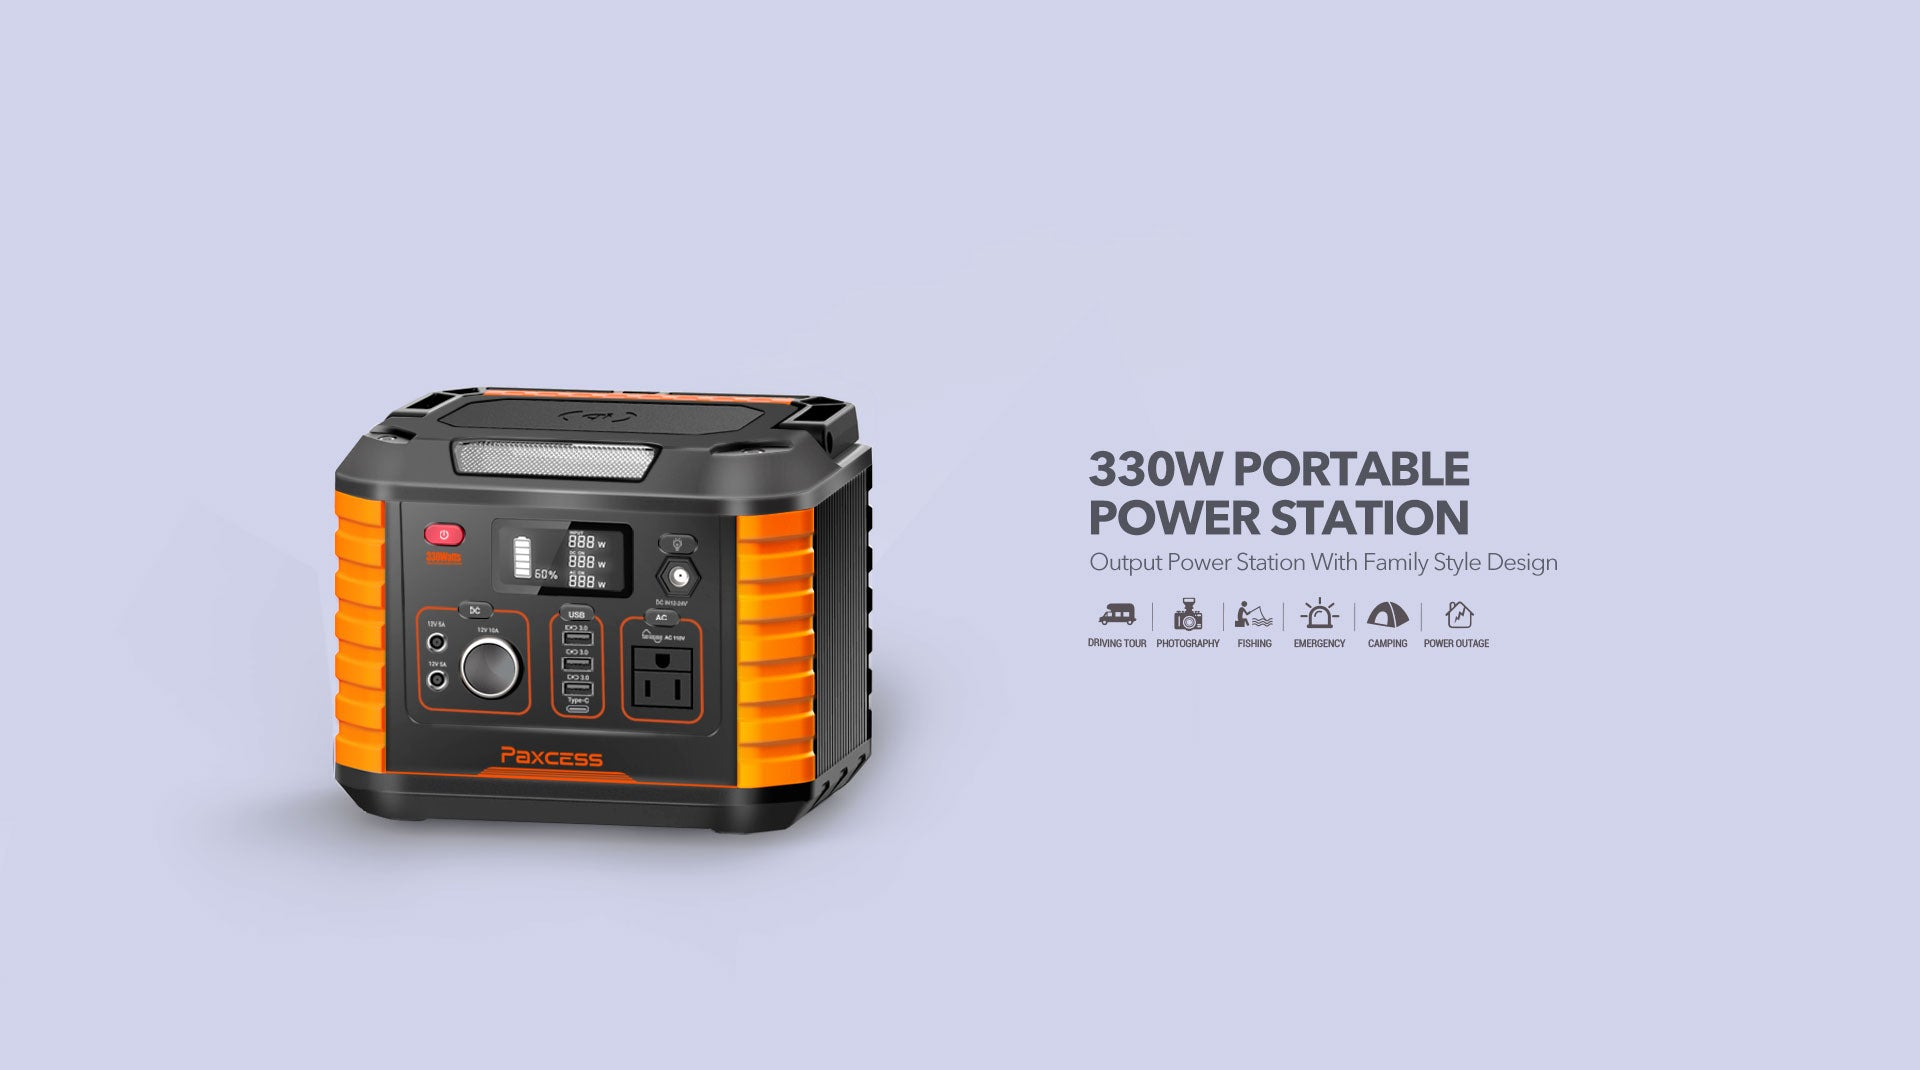 Paxcess 330W Portable Power Station